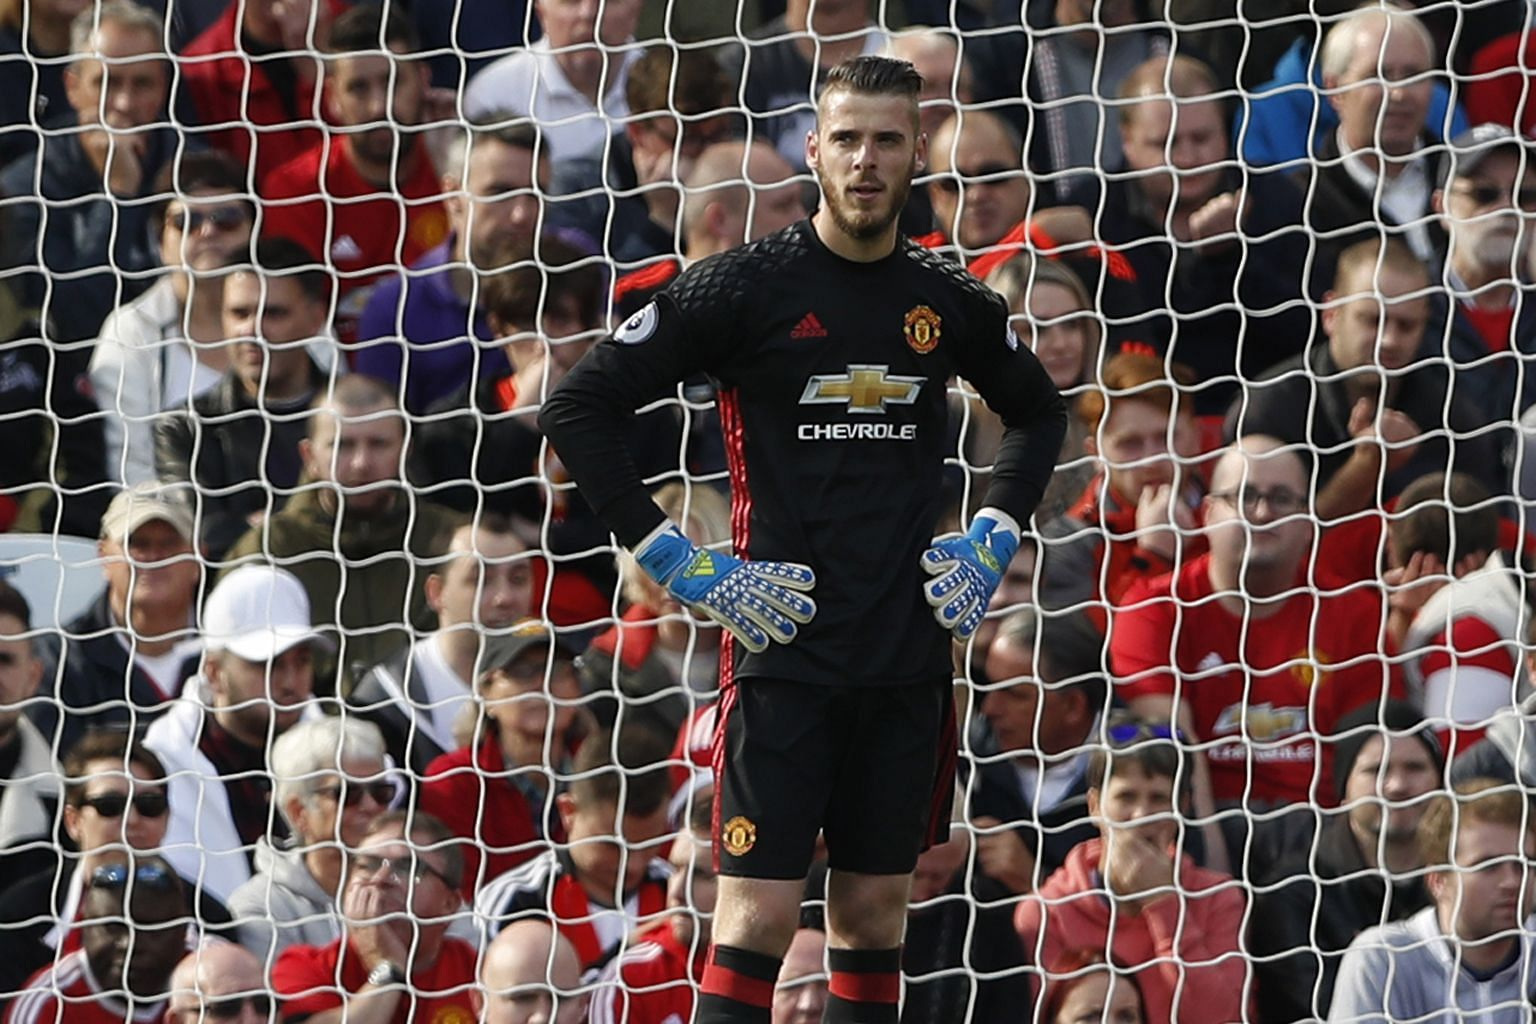 A dejected- looking United goalkeeper David de Gea, whose fumble led to Stoke's equaliser at Old Trafford late in the game. Anthony Martial had given the home team the lead with his first goal of the season. The point moved Stoke up into 19th spot wh